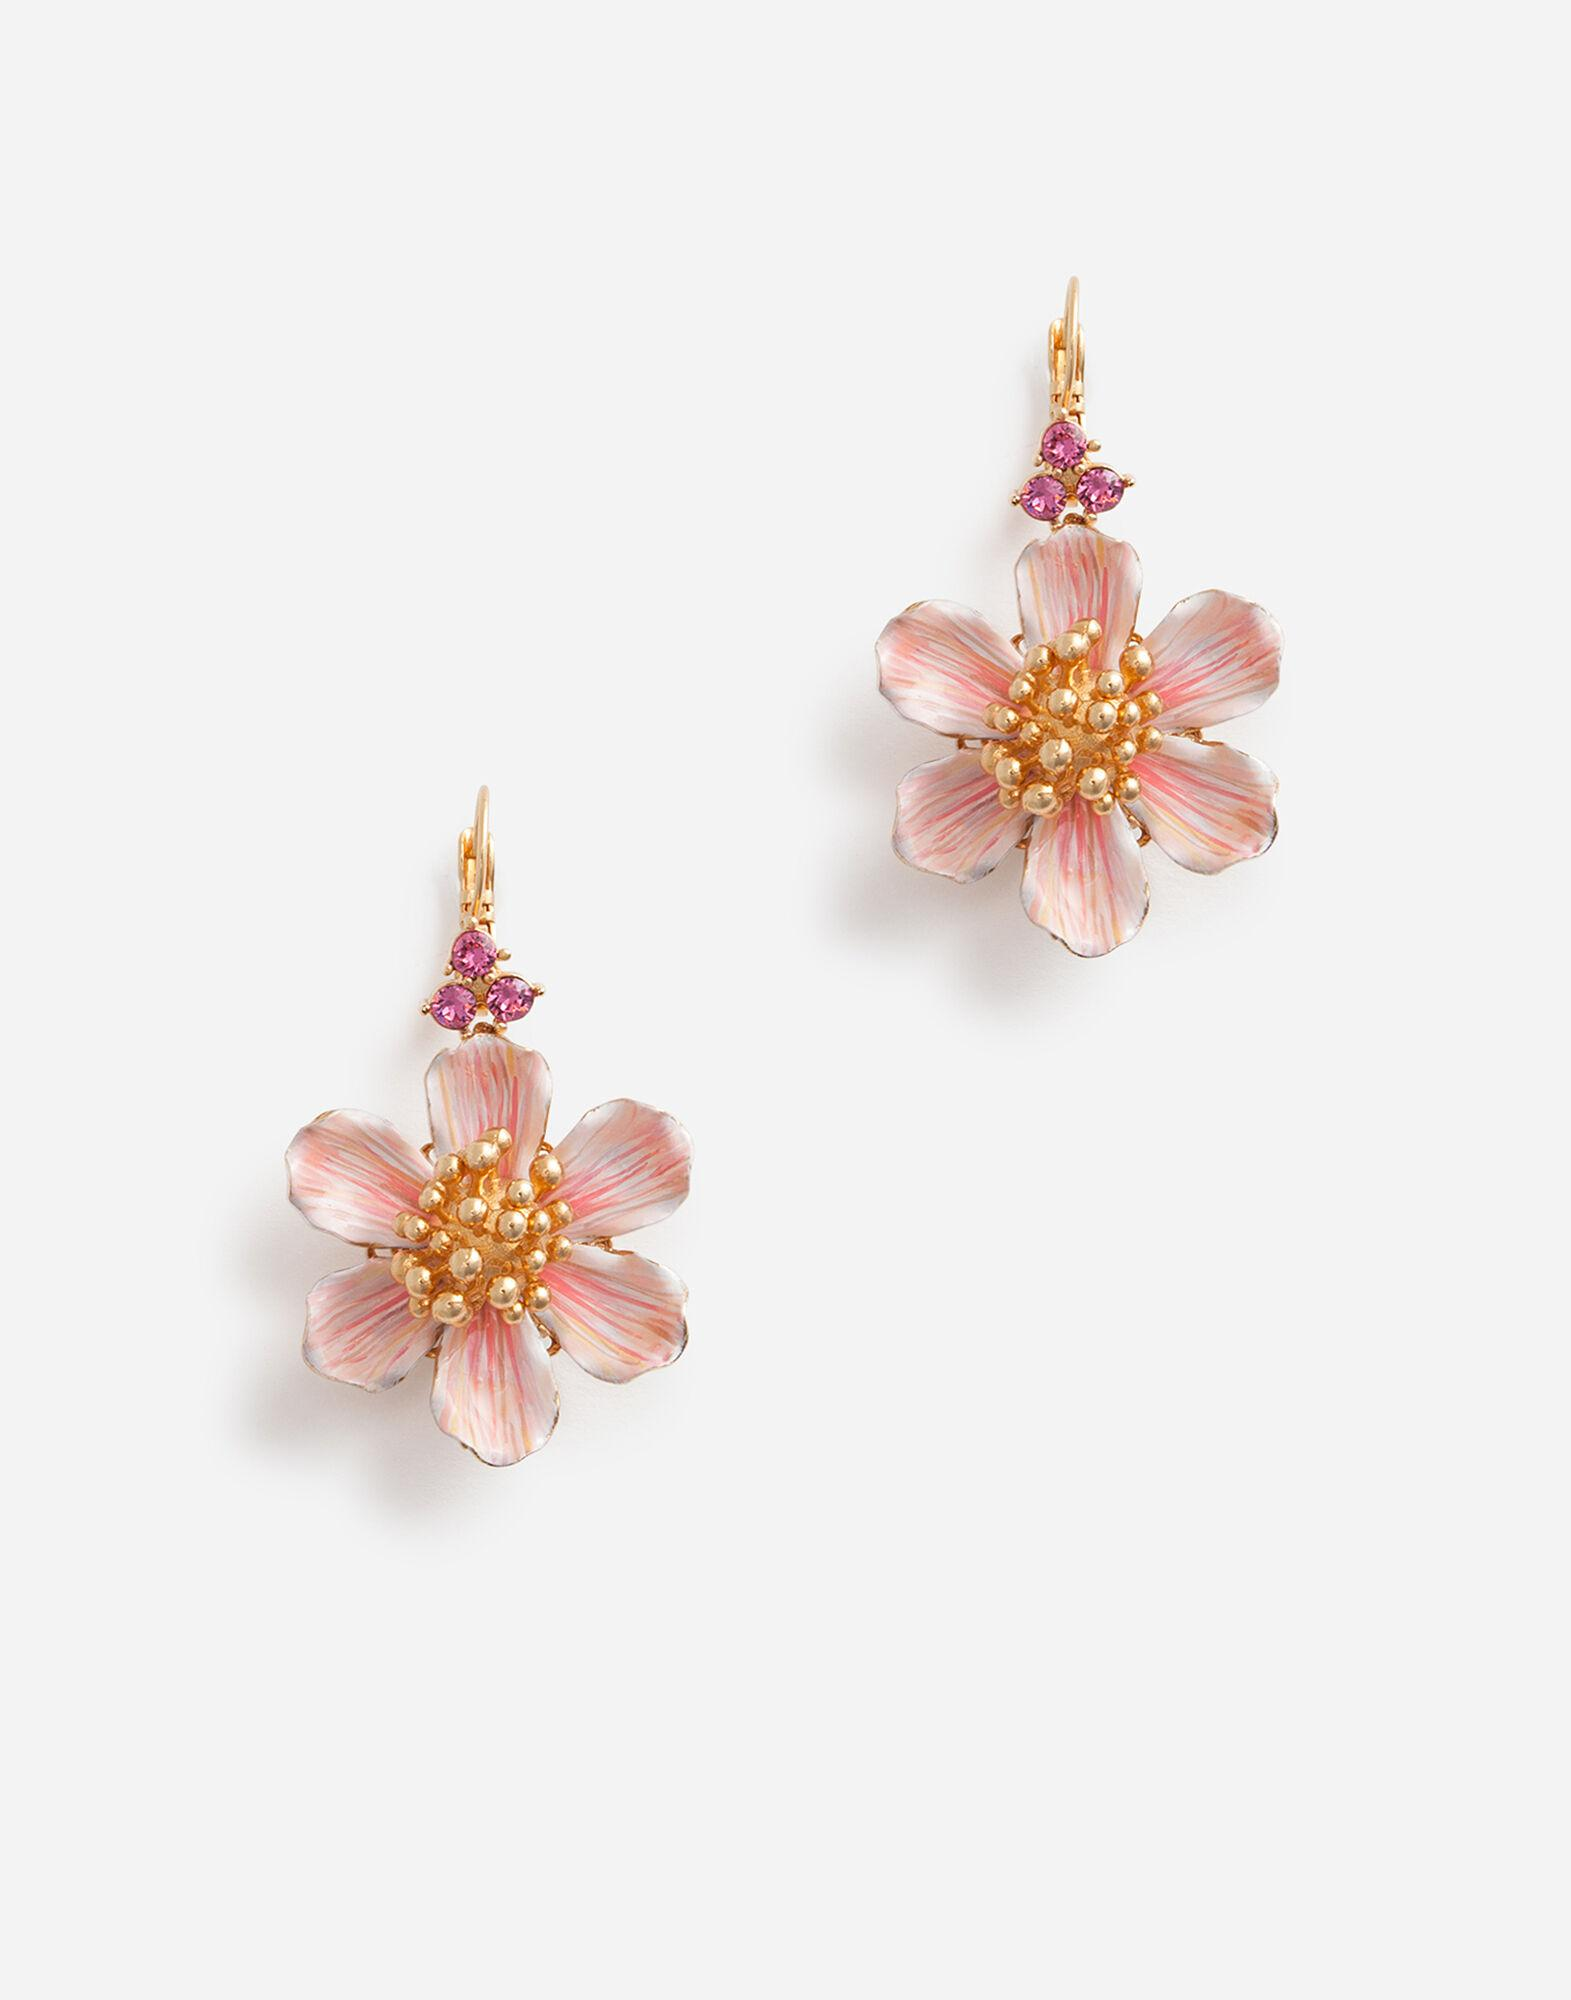 Leverback earrings with hand-painted flower